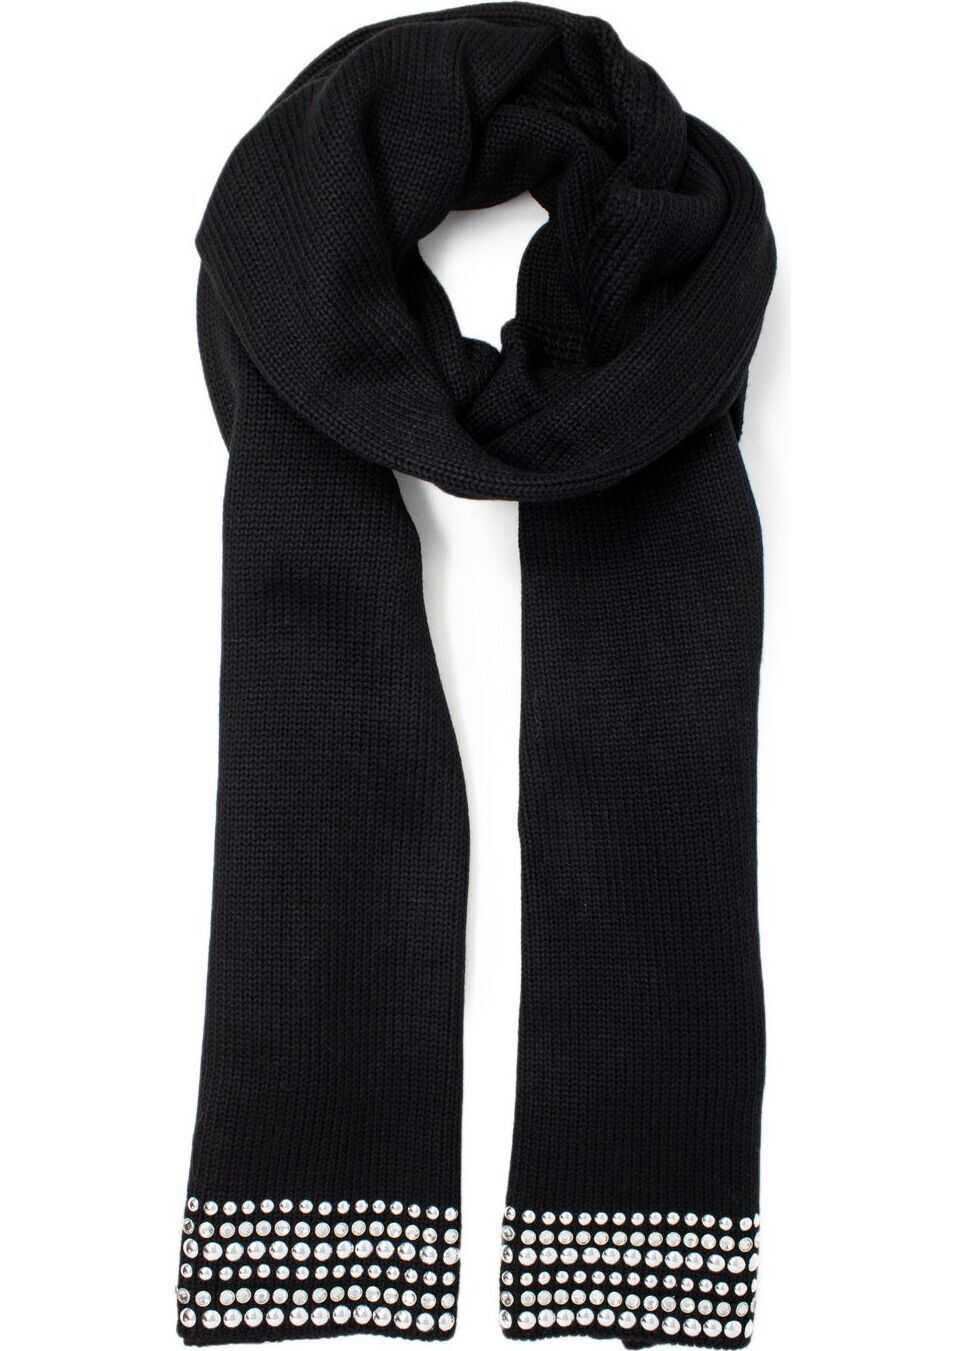 GUESS Polyester Scarf BLACK